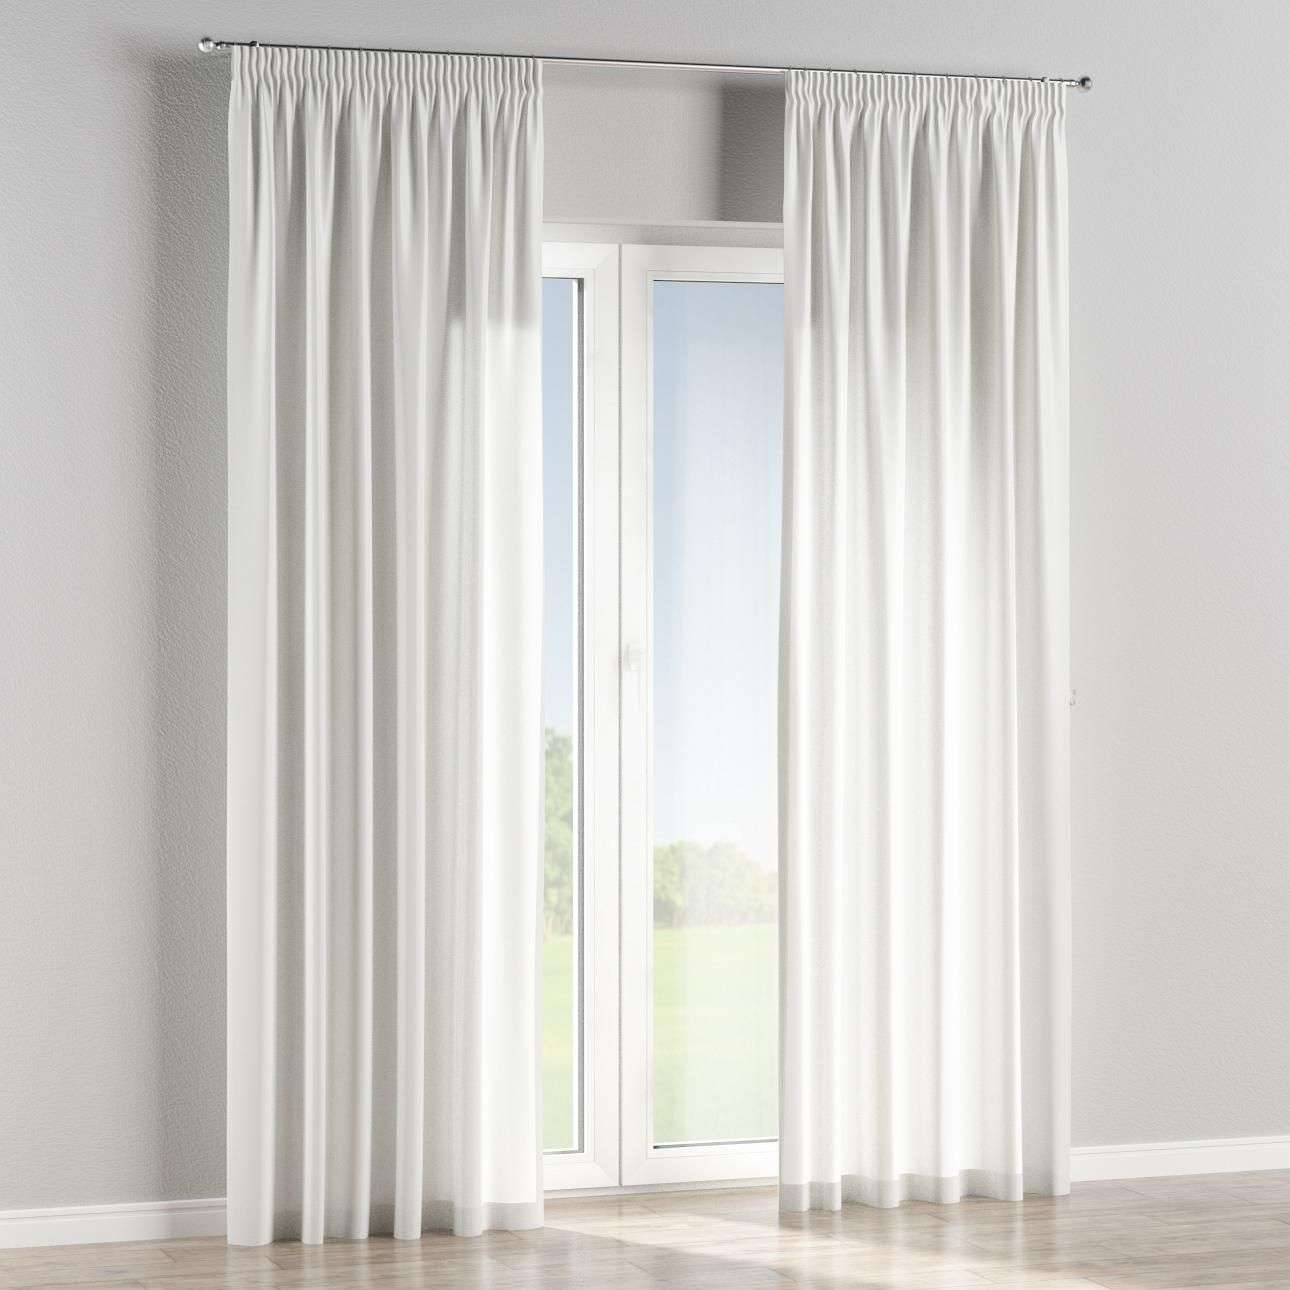 Pencil pleat curtains in collection Rustica, fabric: 138-10